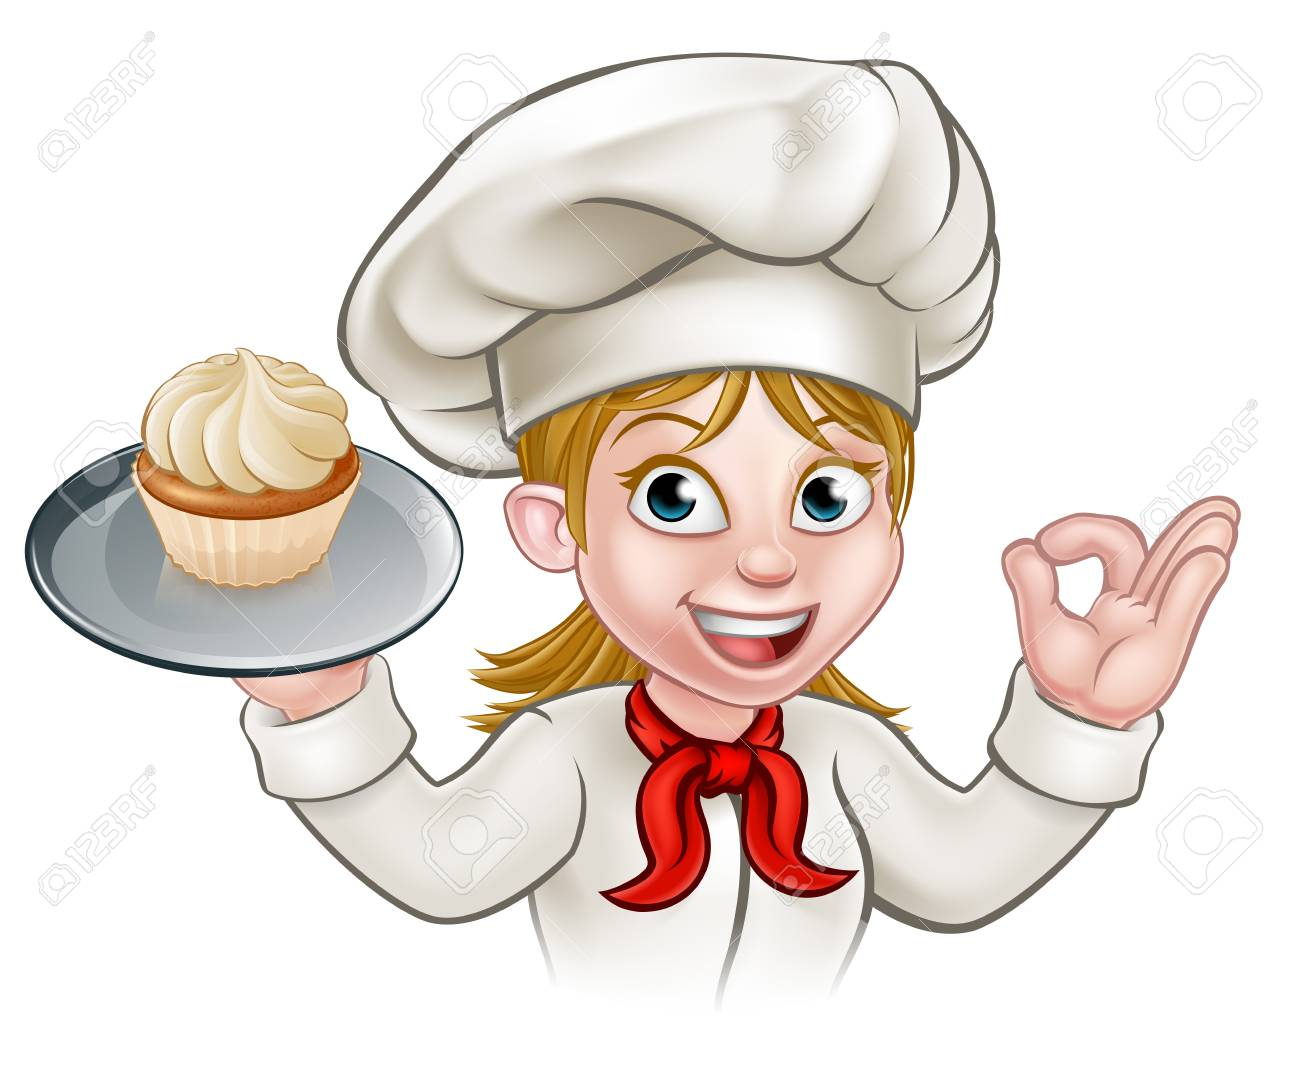 Cartoon Woman Pastry Chef Baker With Cupcake.